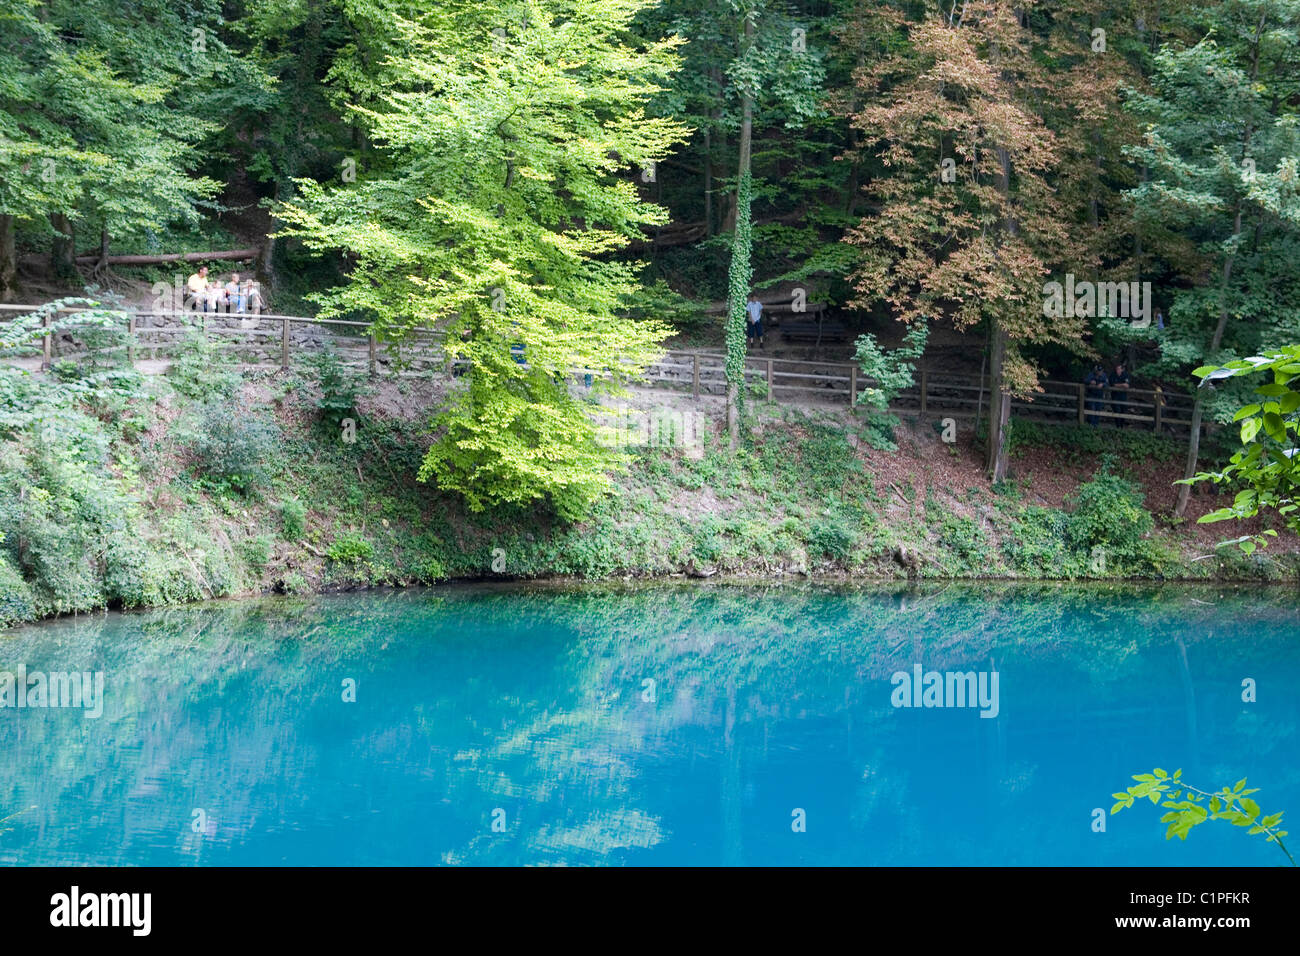 Germany, Bavaria, Blaubeuren, river Blau - Stock Image